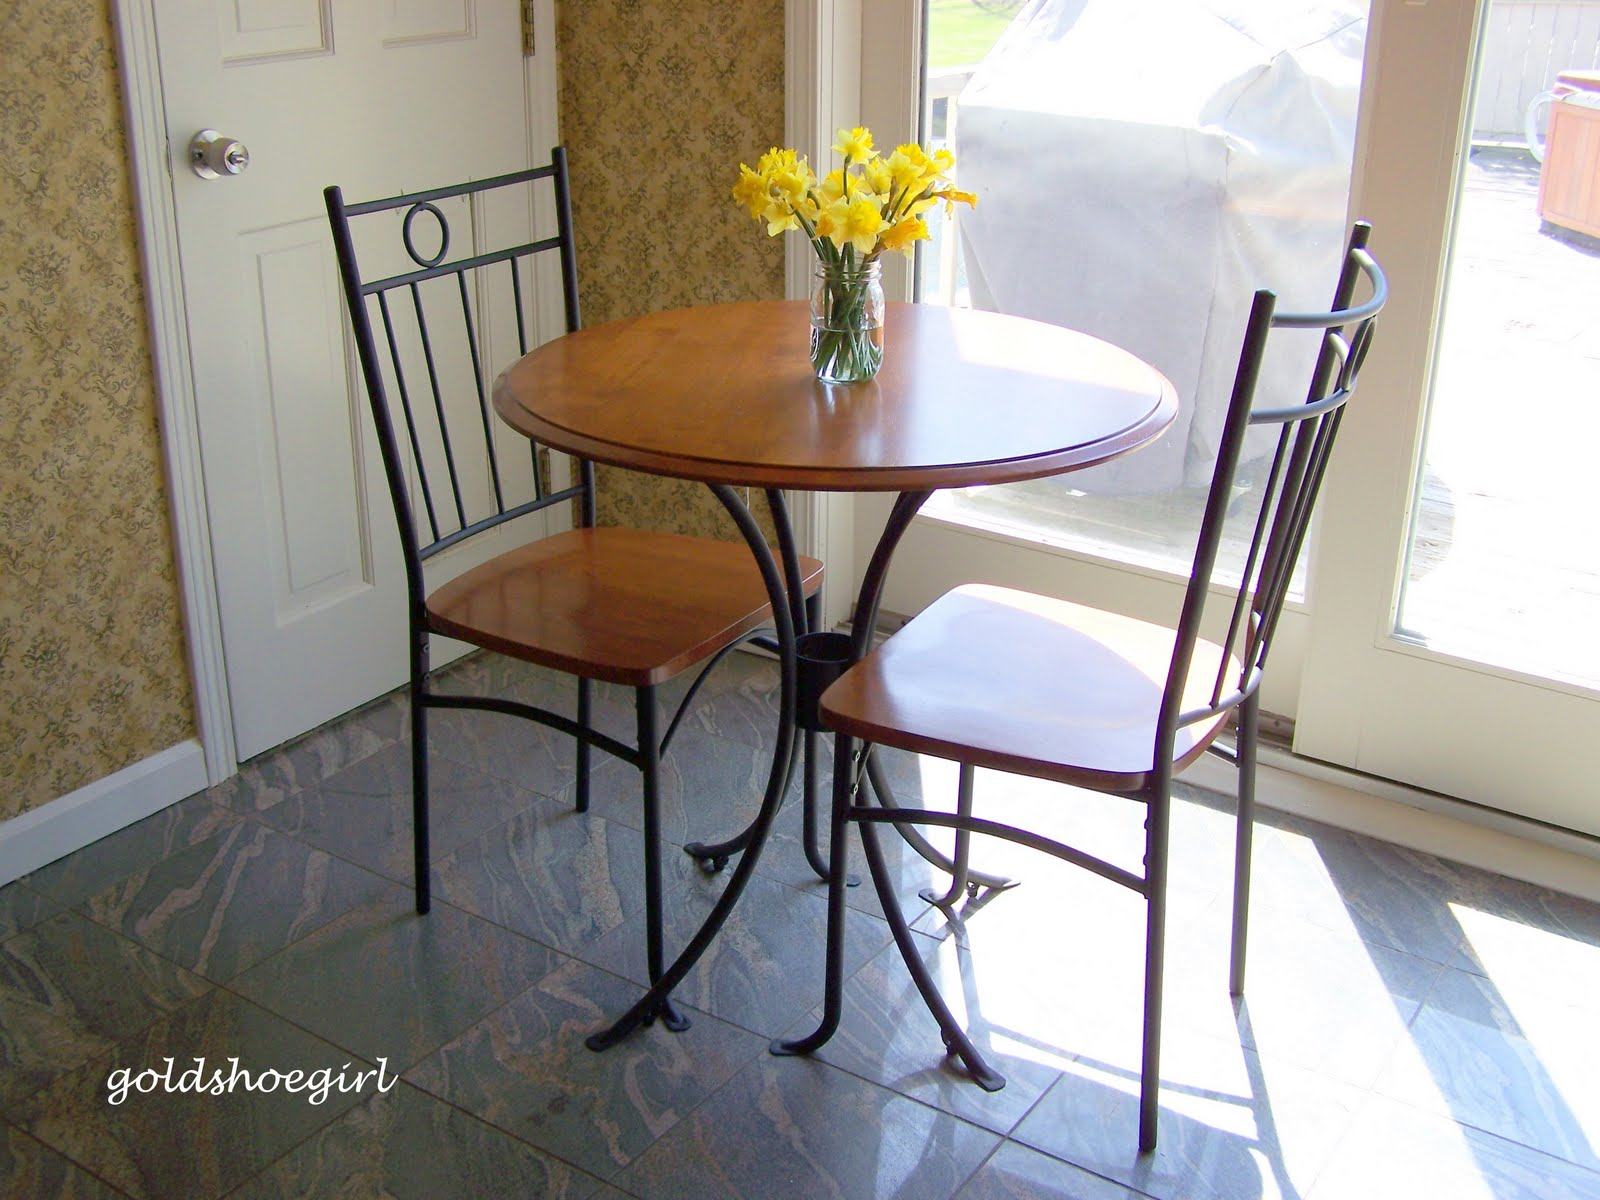 Gold Shoe Girl: New Kitchen Table Set